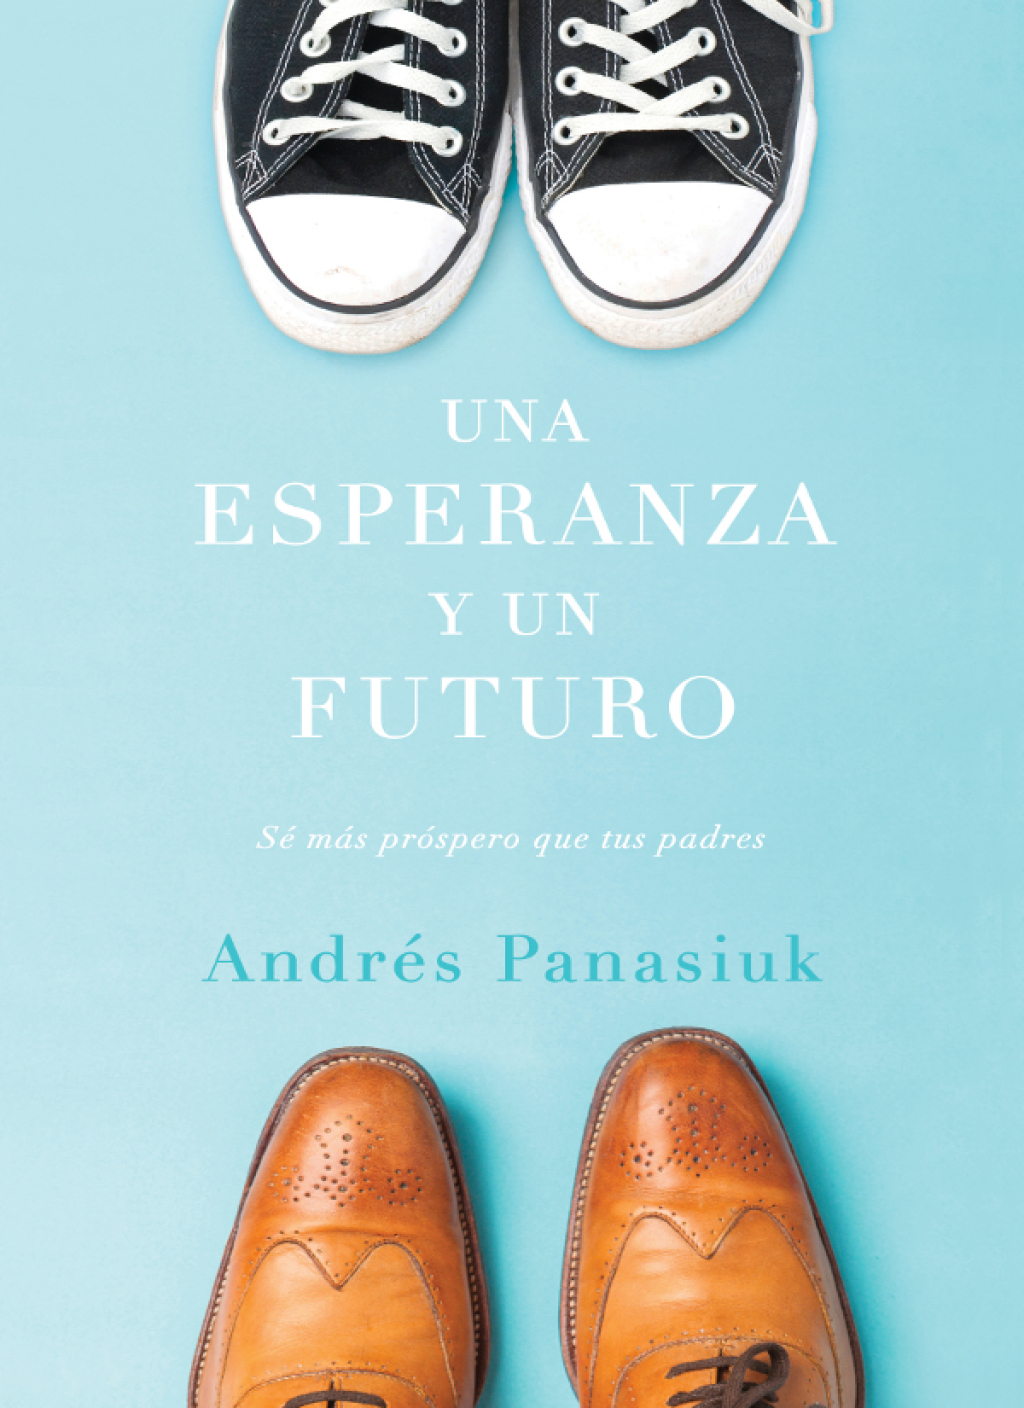 By Andrés Panasiuk PRINTISBN: 9781602559288 E-TEXT ISBN: 9781602559288 Edition: 0